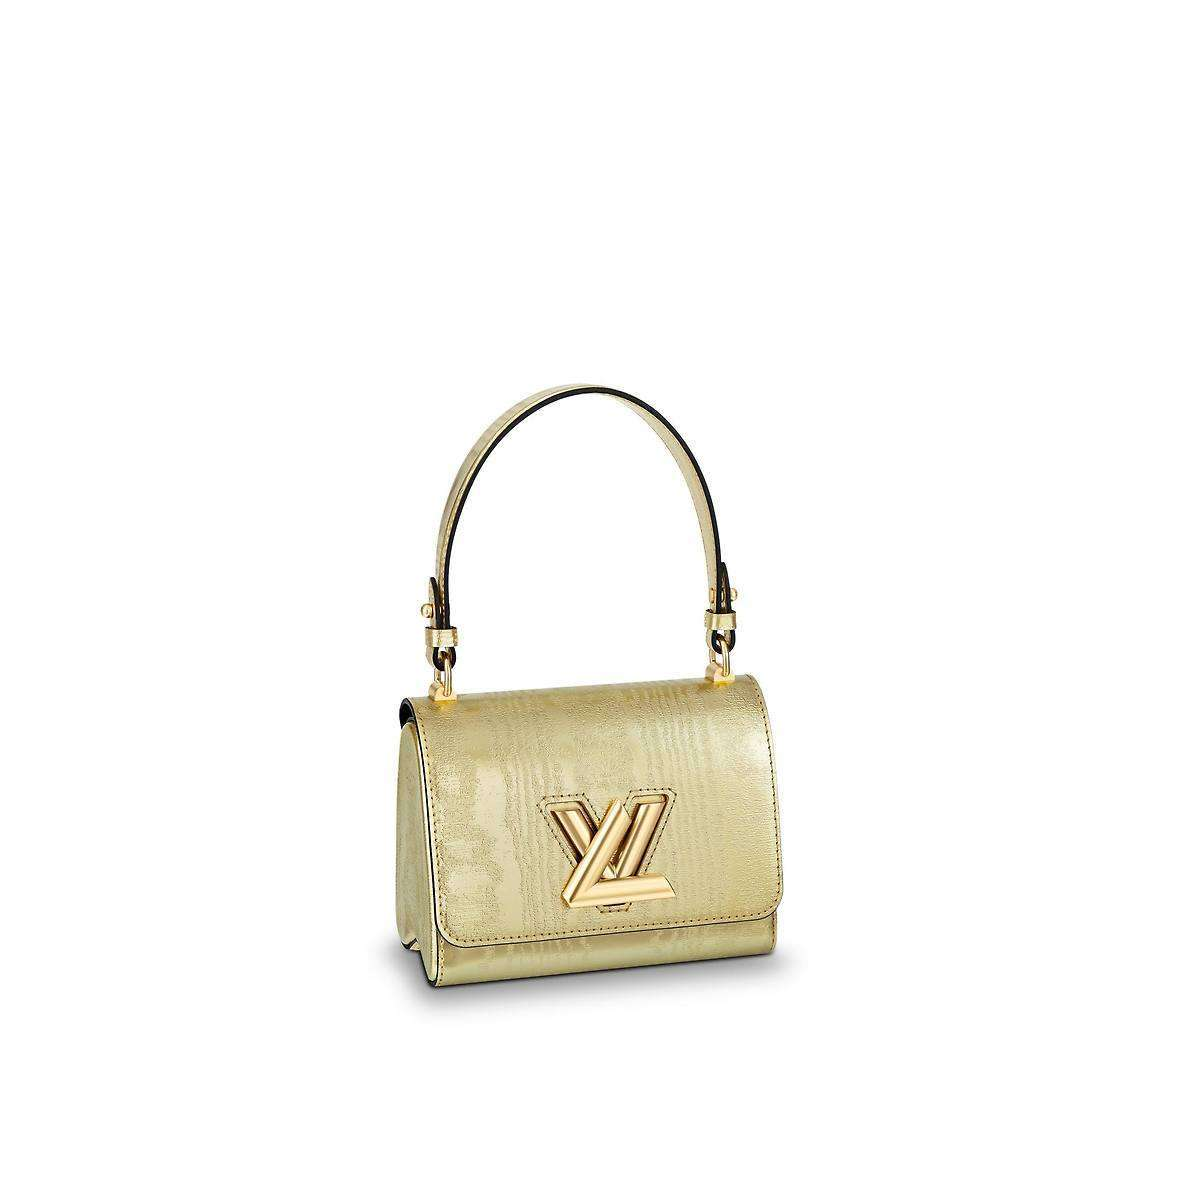 Borsa a spalla Twist PM Louis Vuitton dorata